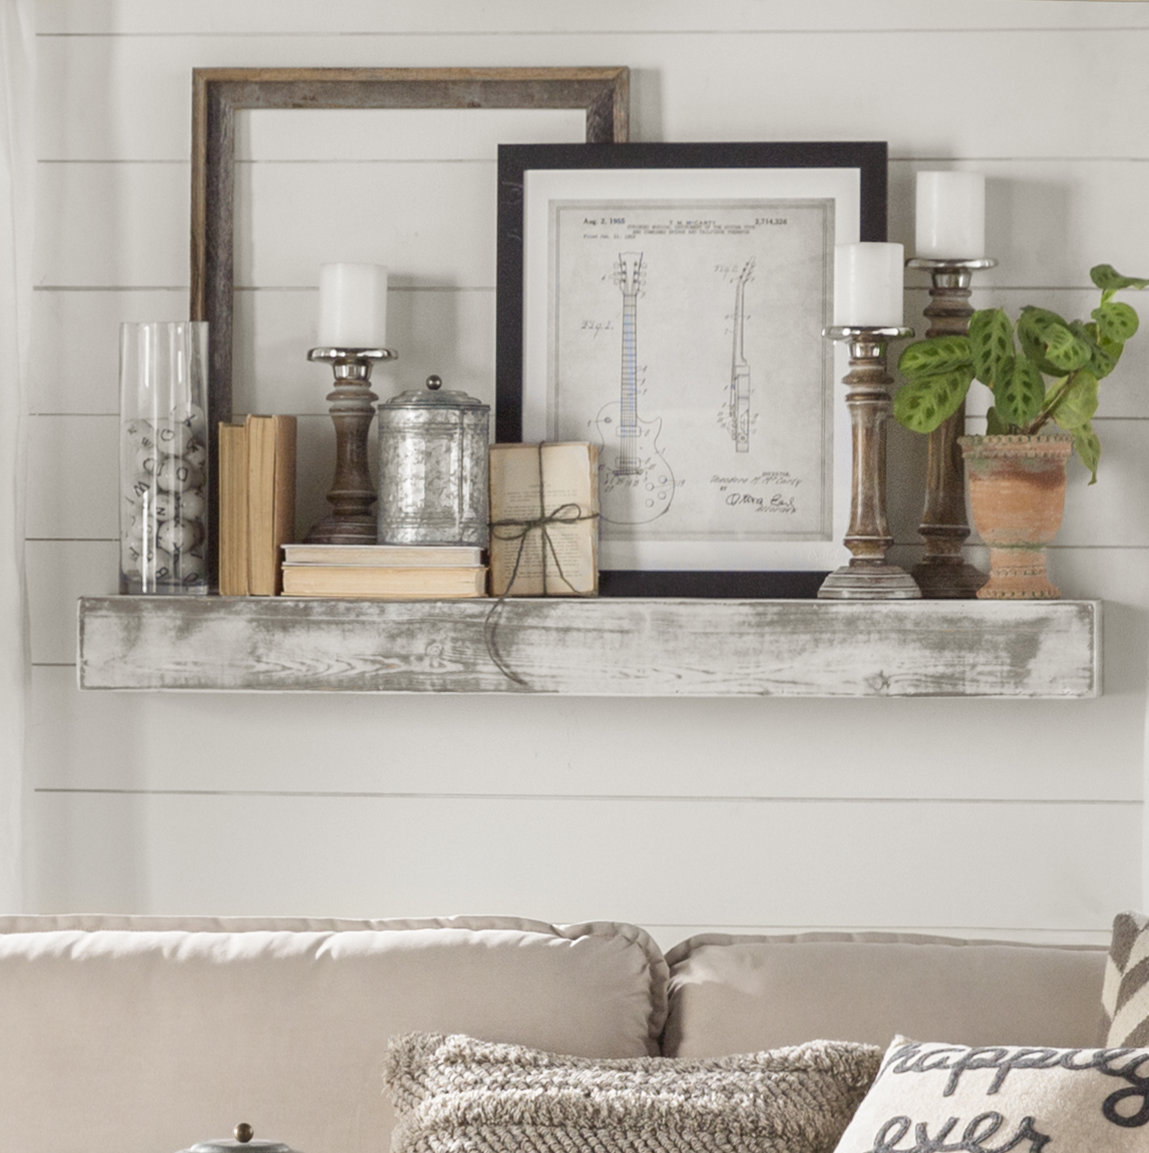 essex hand crafted wood products floating shelf shabby white solid handmade rustic style wall marble reviews clips for adjustable shelving limed oak shelves lack ikea furniture